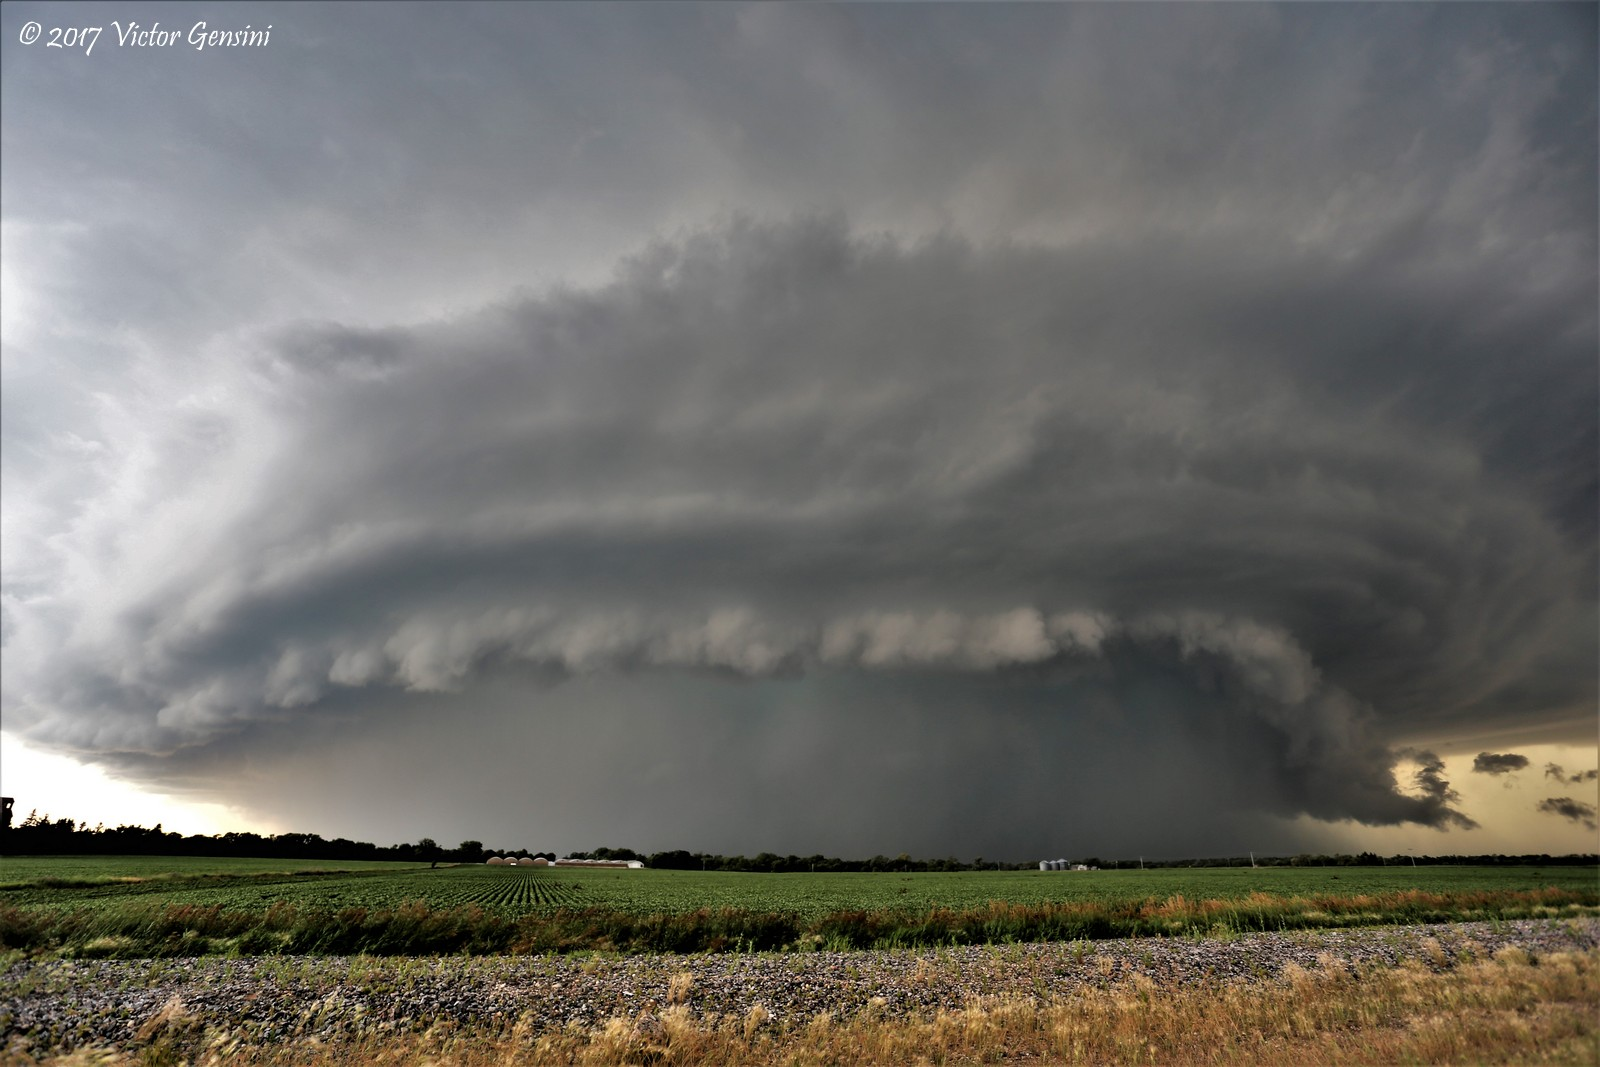 Tornado Supercell Diagram Led Wiring Calculator Vittorio 39s Voyages 7 11 2017 Mayville Nd Hp